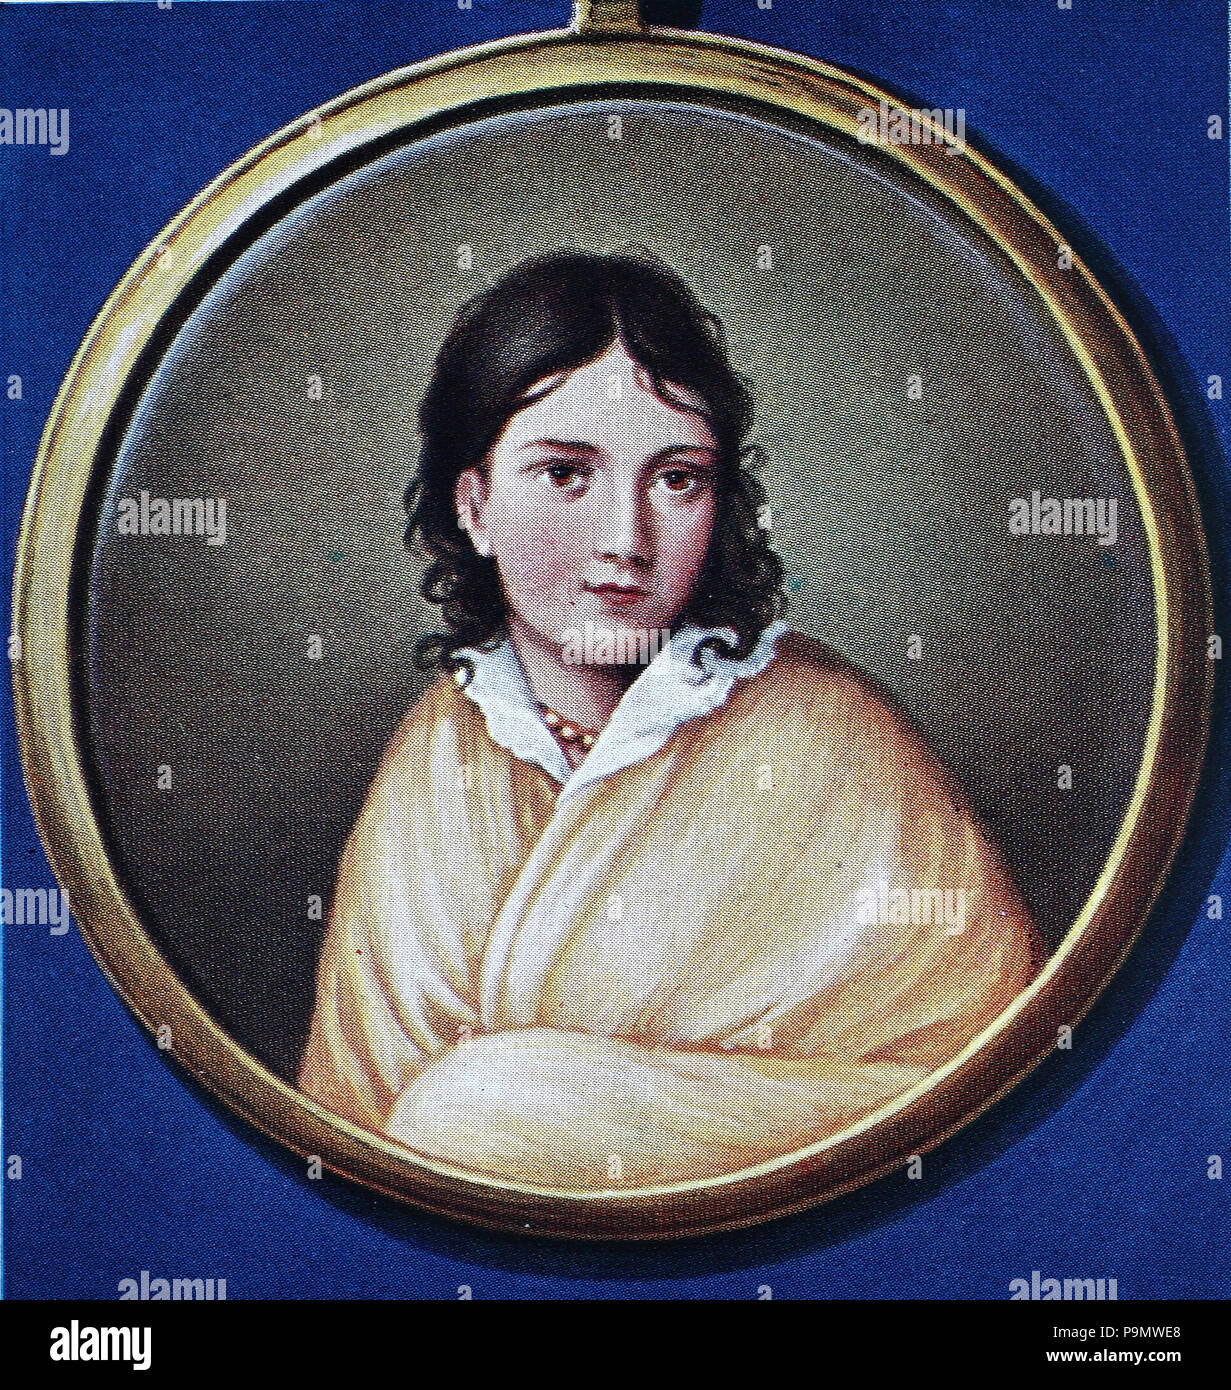 Bettina von Arnim, the Countess of Arnim, 4 April 1785 – 20 January 1859, born Elisabeth Catharina Ludovica Magdalena Brentano, was a German writer and novelist, digital improved reproduction of an original print from the year 1900 - Stock Image